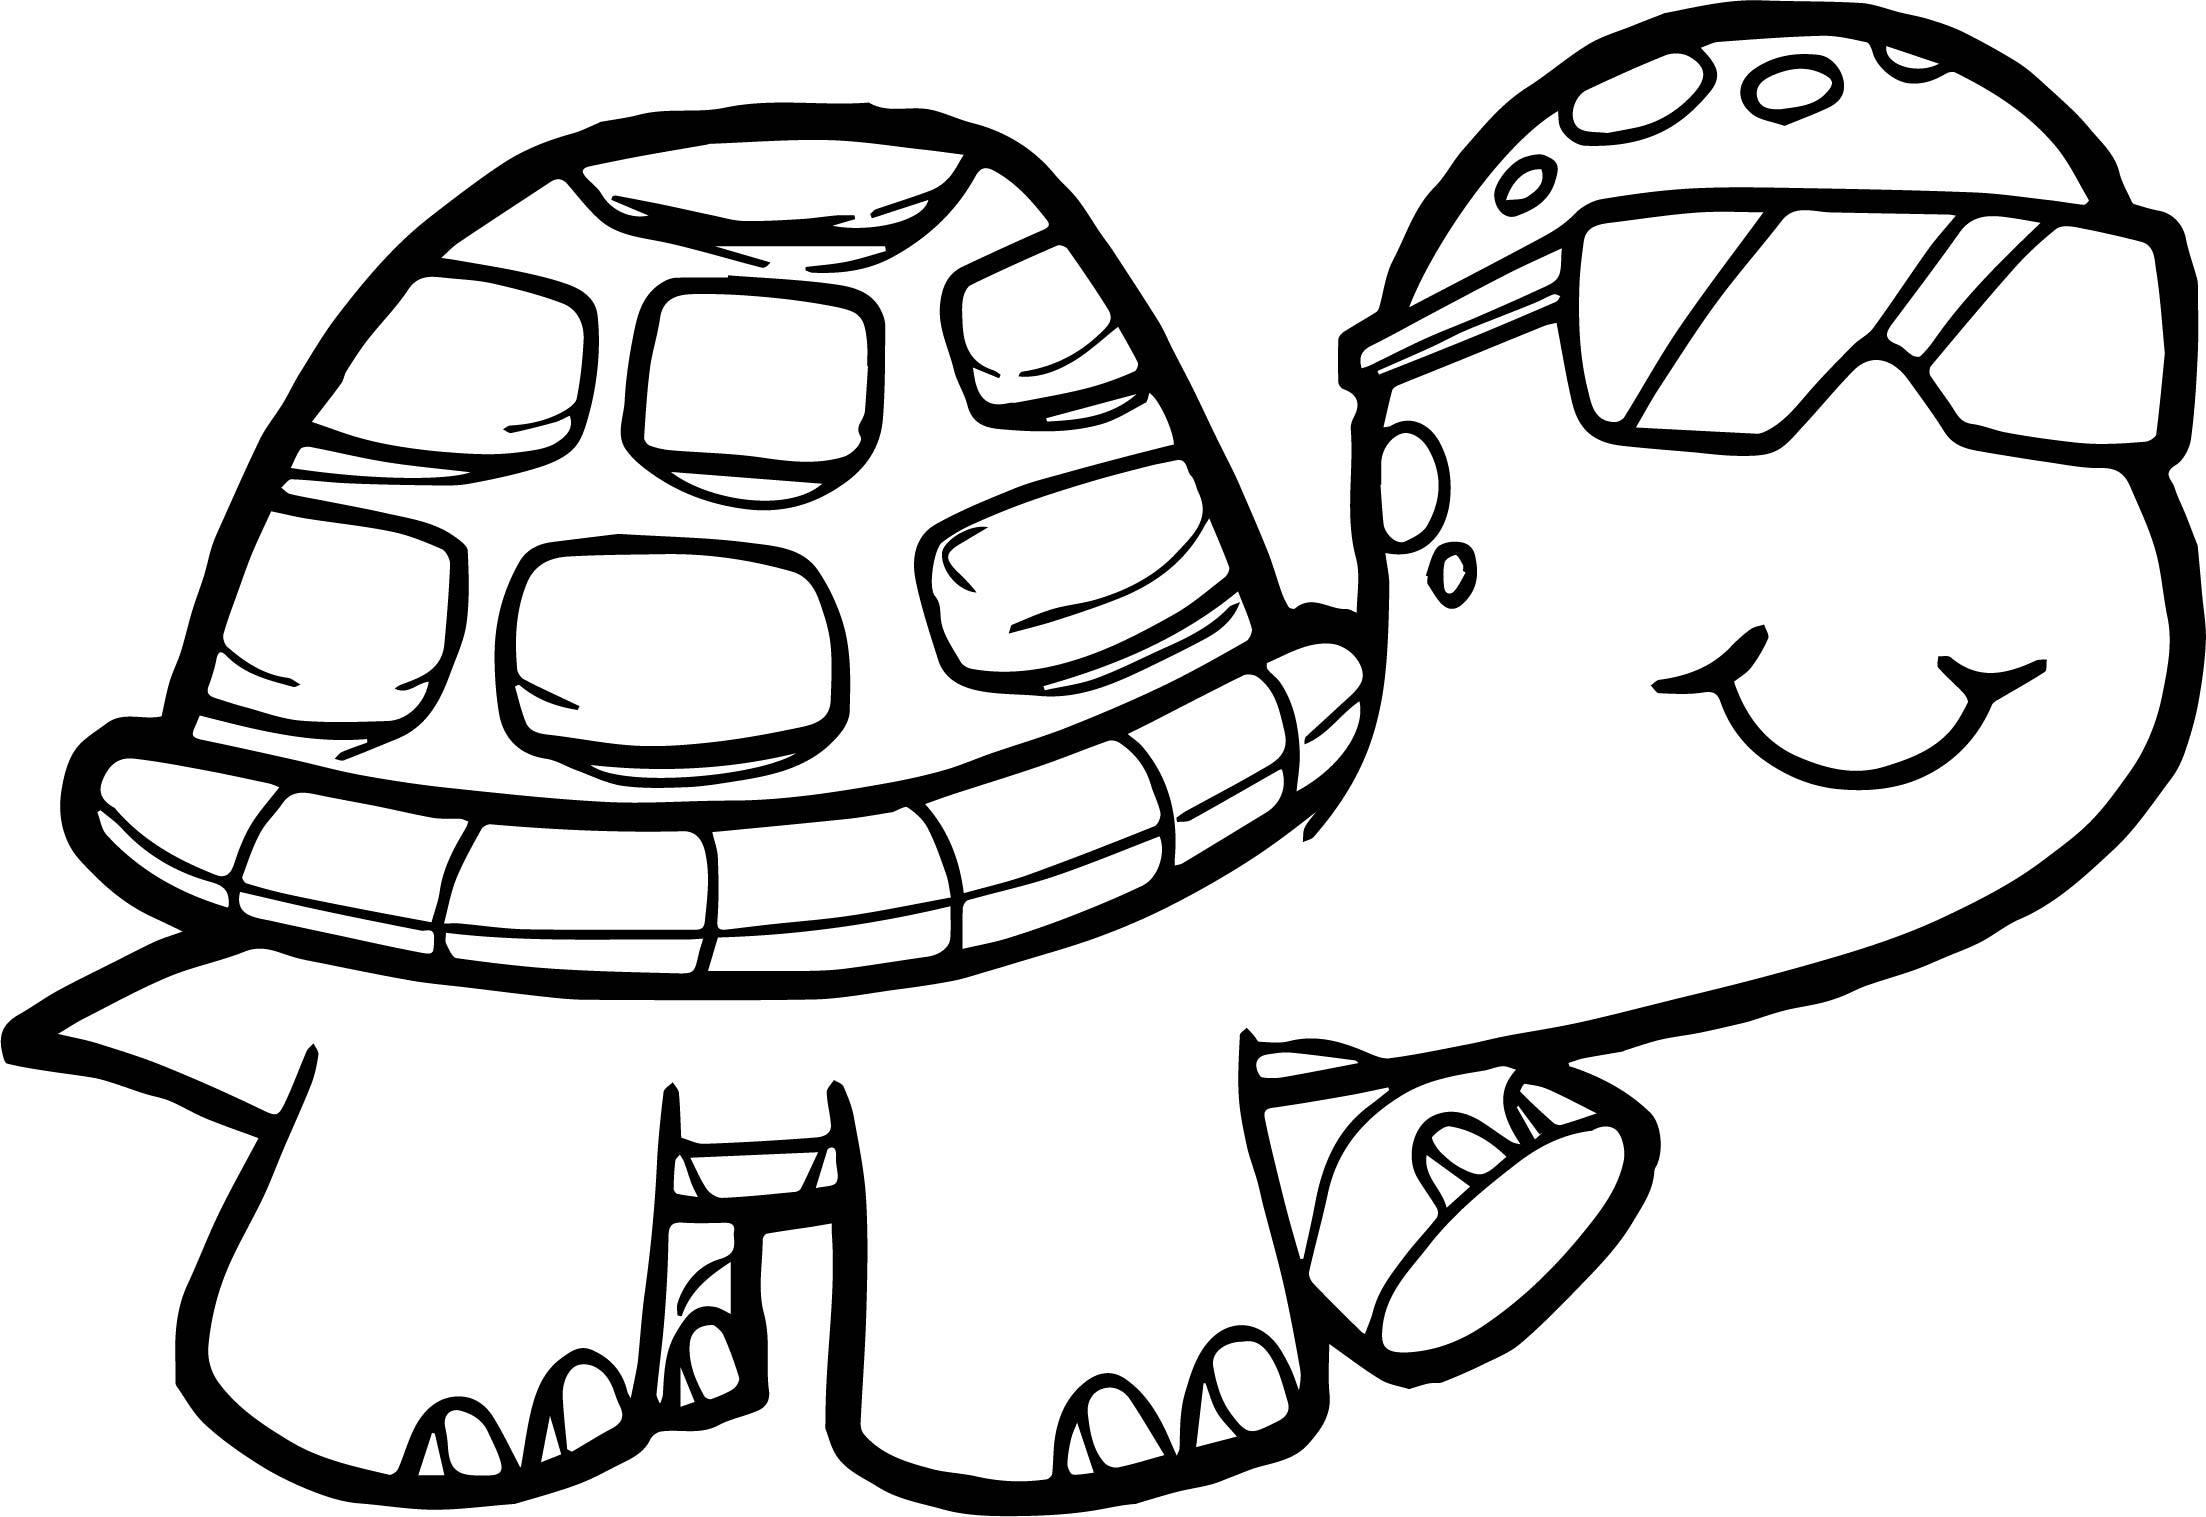 Glasses tortoise turtle coloring page for Turtle coloring pages